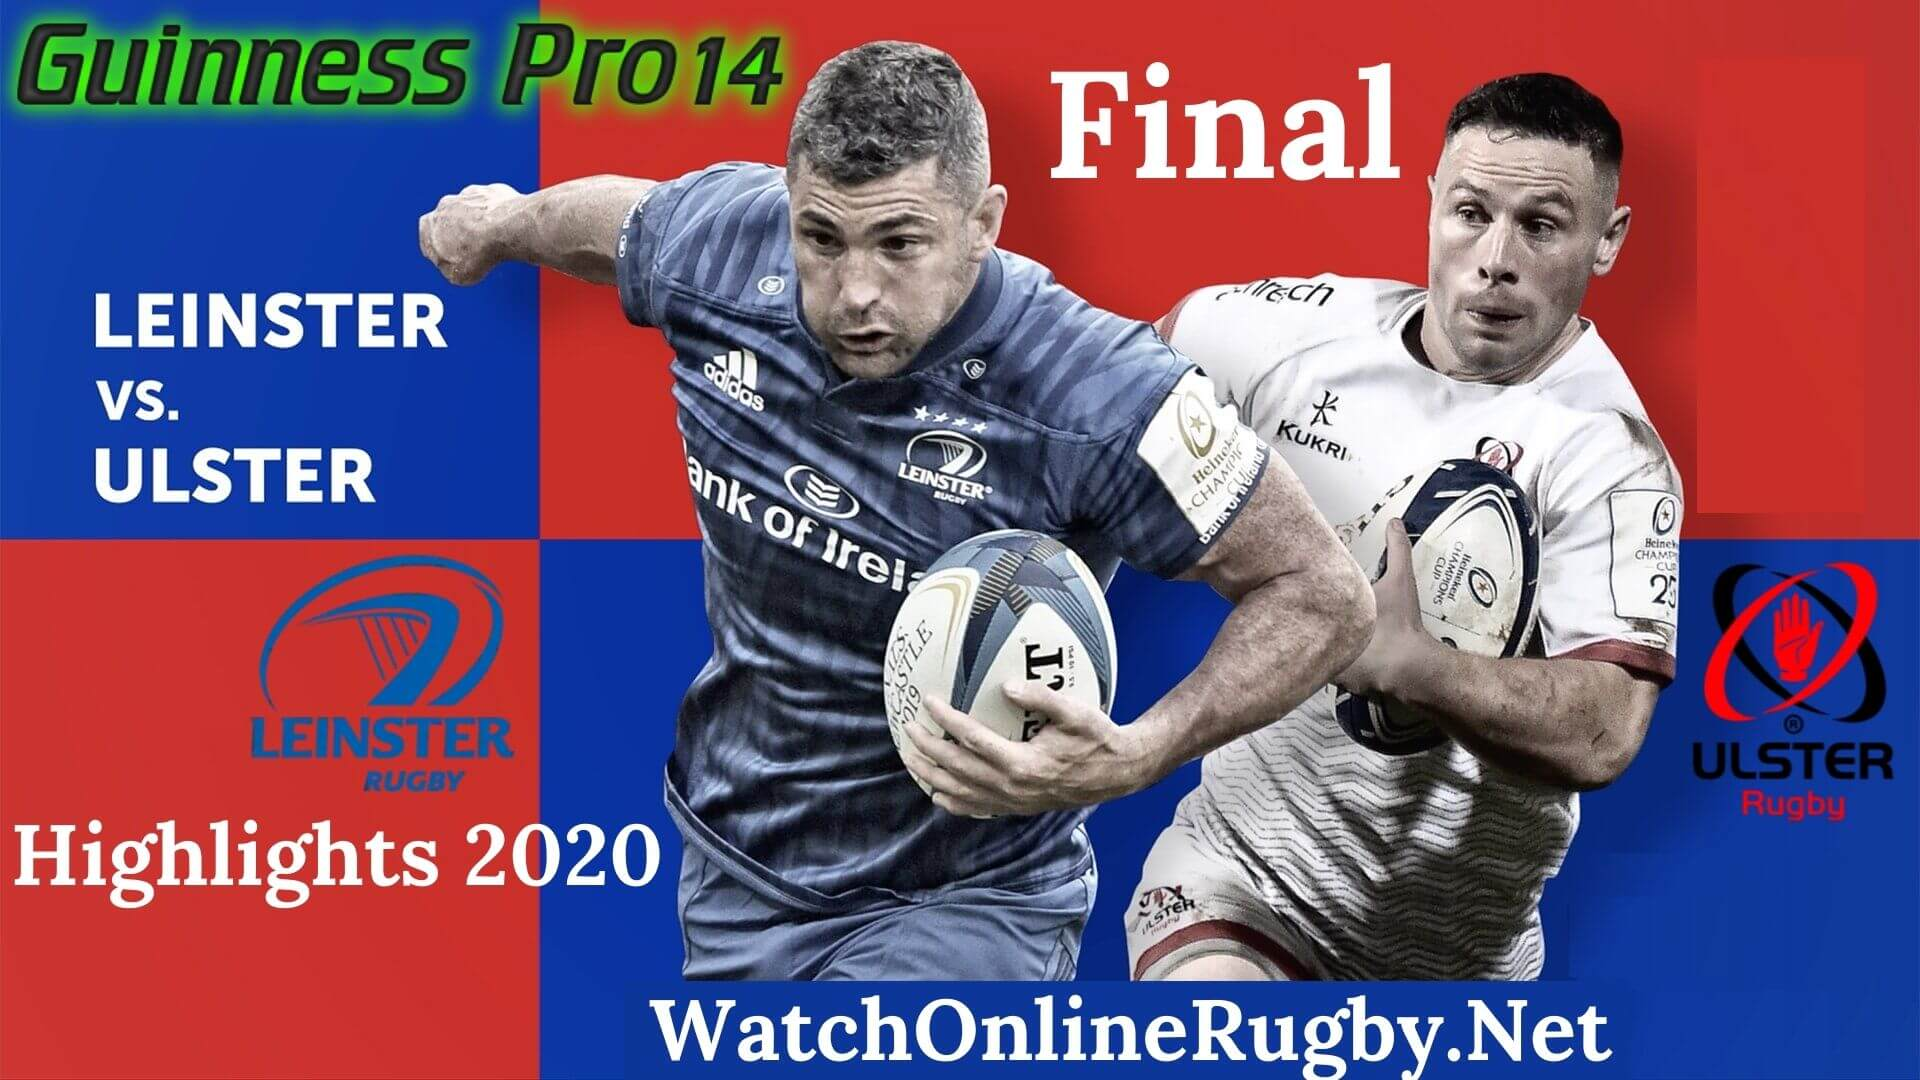 Leinster vs Ulster Final Highlights 2020